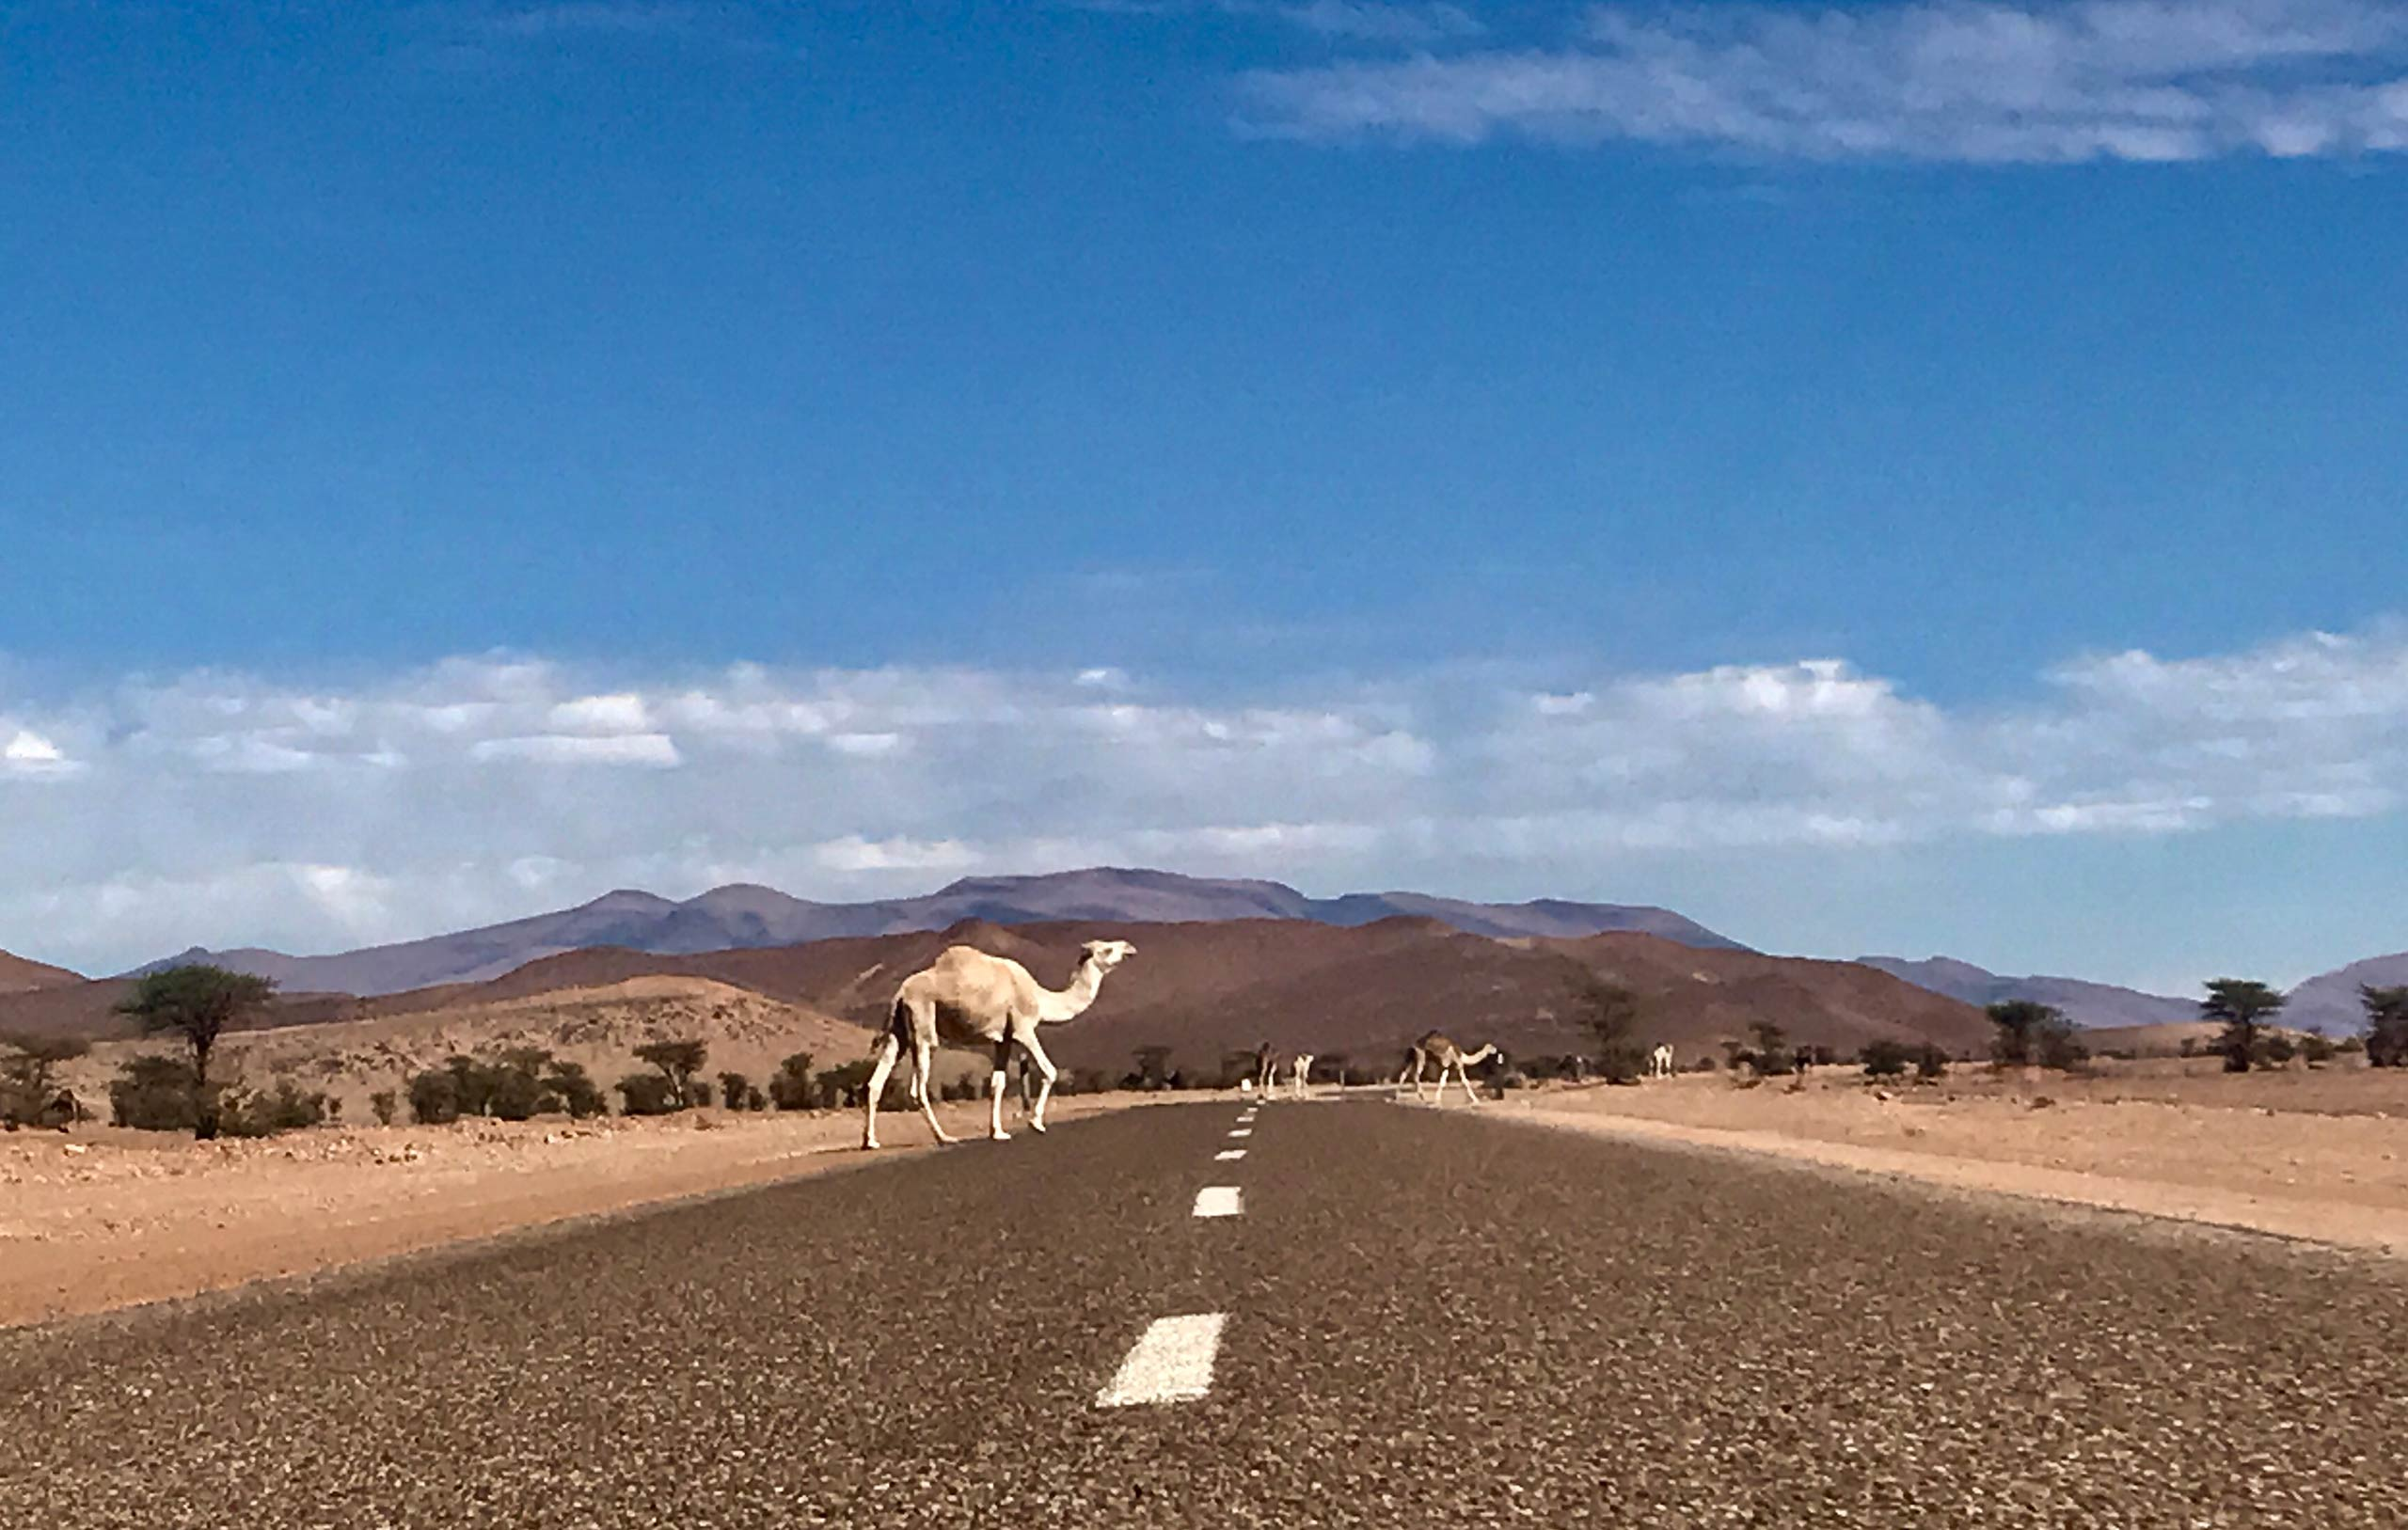 A camel crosses the road in the desert in Morocco